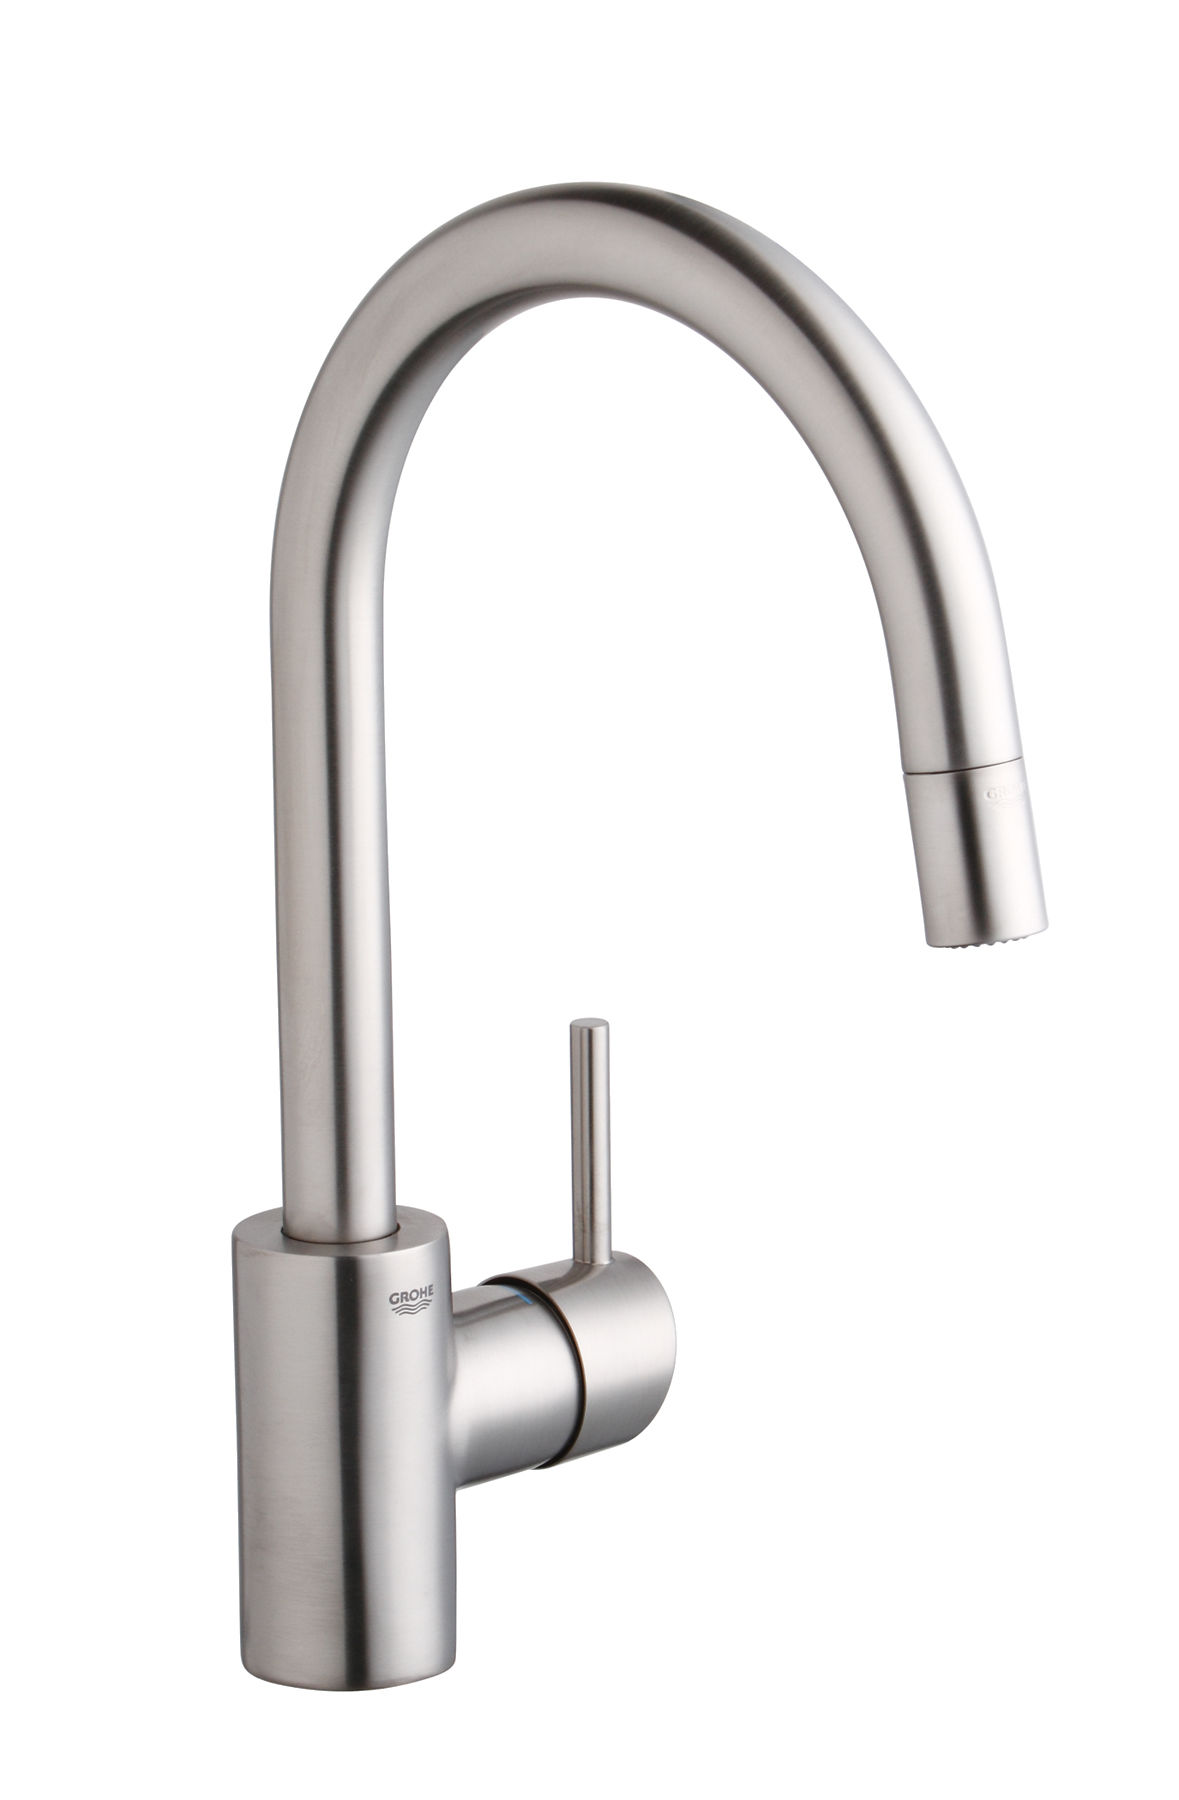 Grohe 32665dc1 supersteel concetto pull down high arc kitchen faucet with dual function locking sprayer faucet com